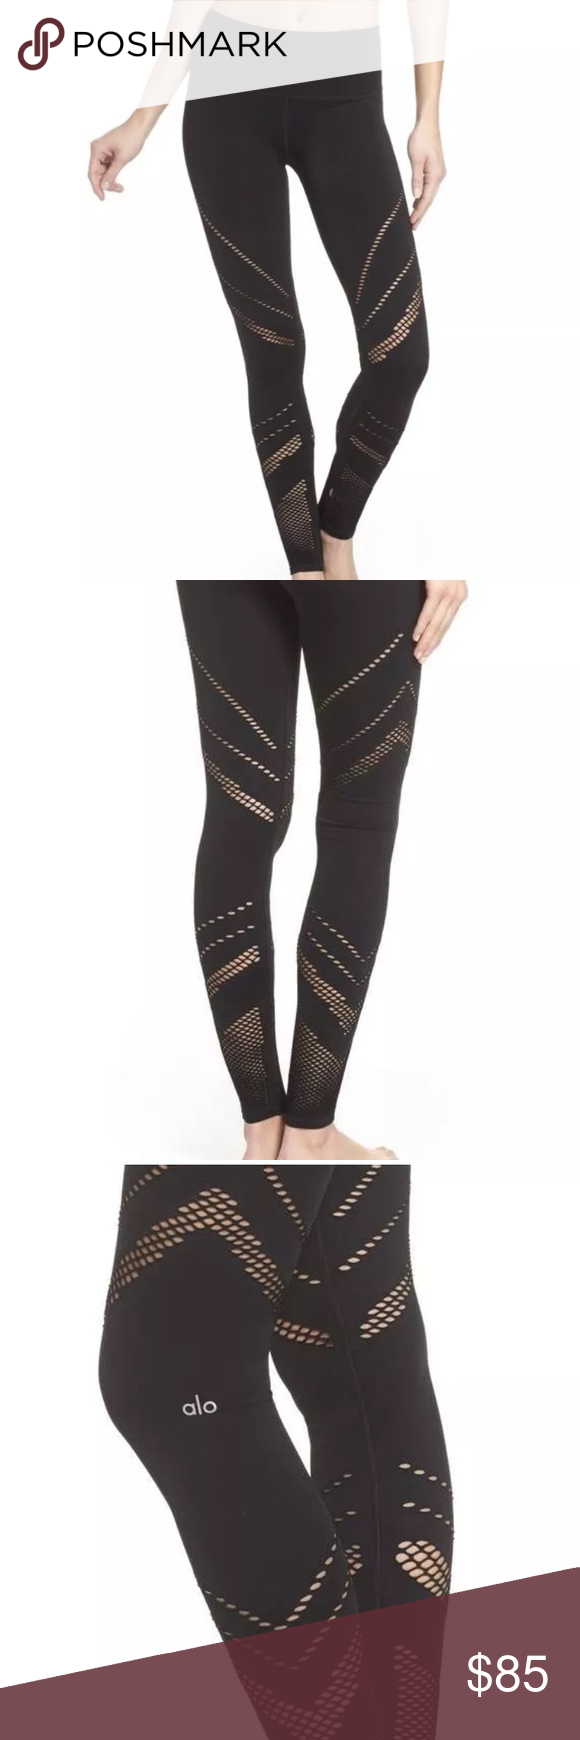 5ab2553f7ac229 Alo Yoga Seamless Hole Perforated Leggings Alo Yoga Seamless Hole  Perforated Cutout High Waist Leggings - Black - Small ALO Yoga Pants  Leggings